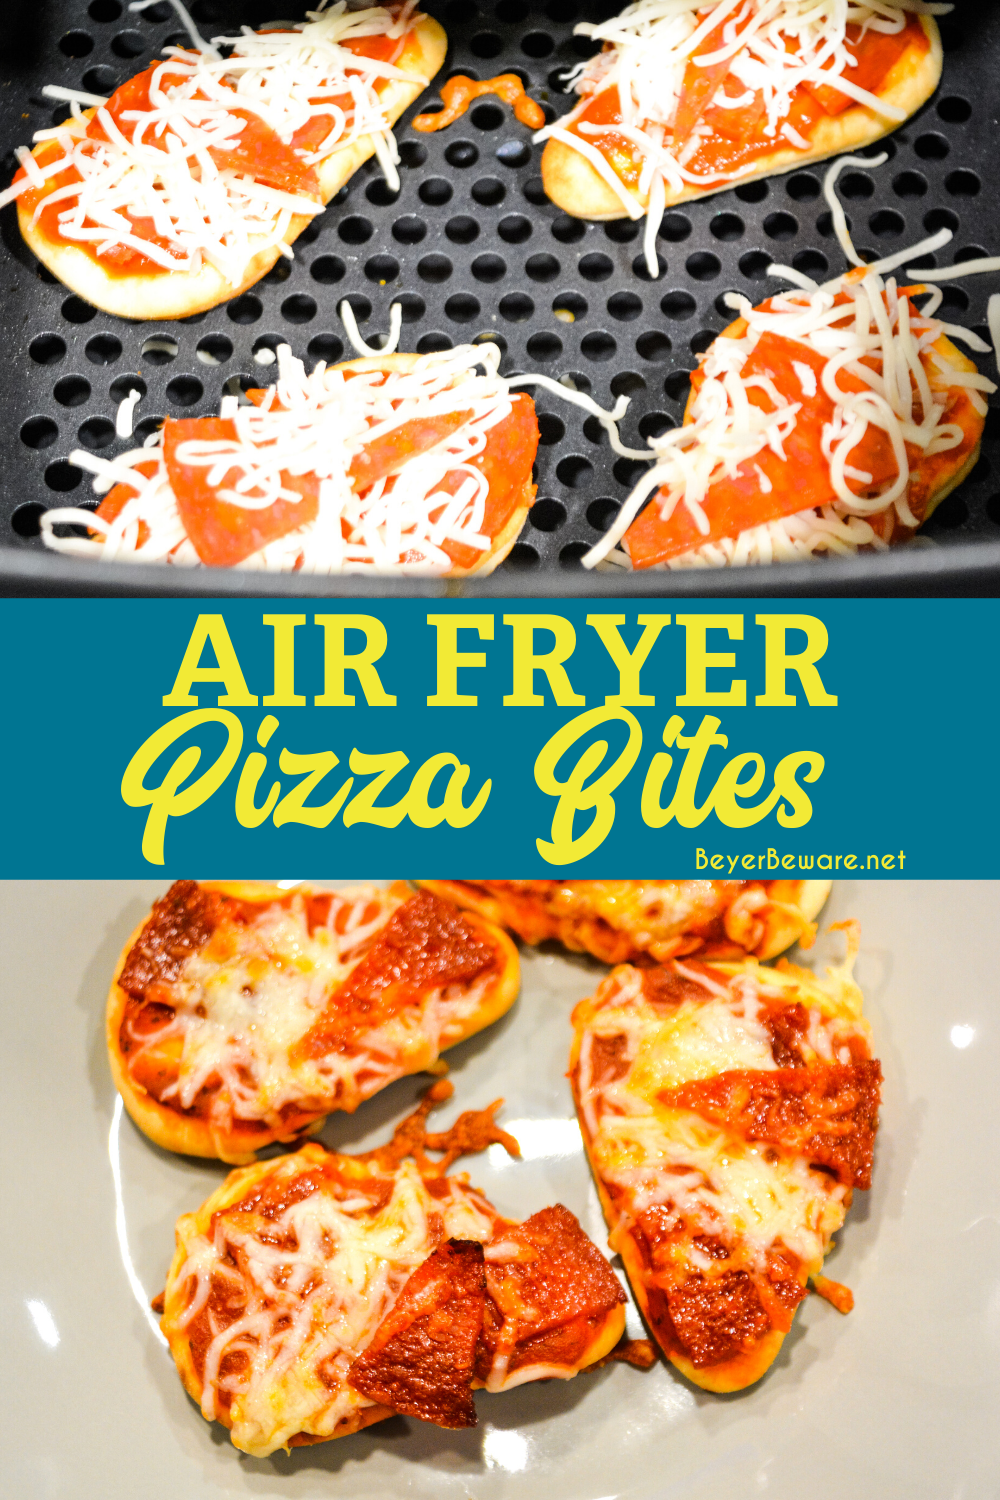 Air fryer pizza bites on naan bread are a simple snack or